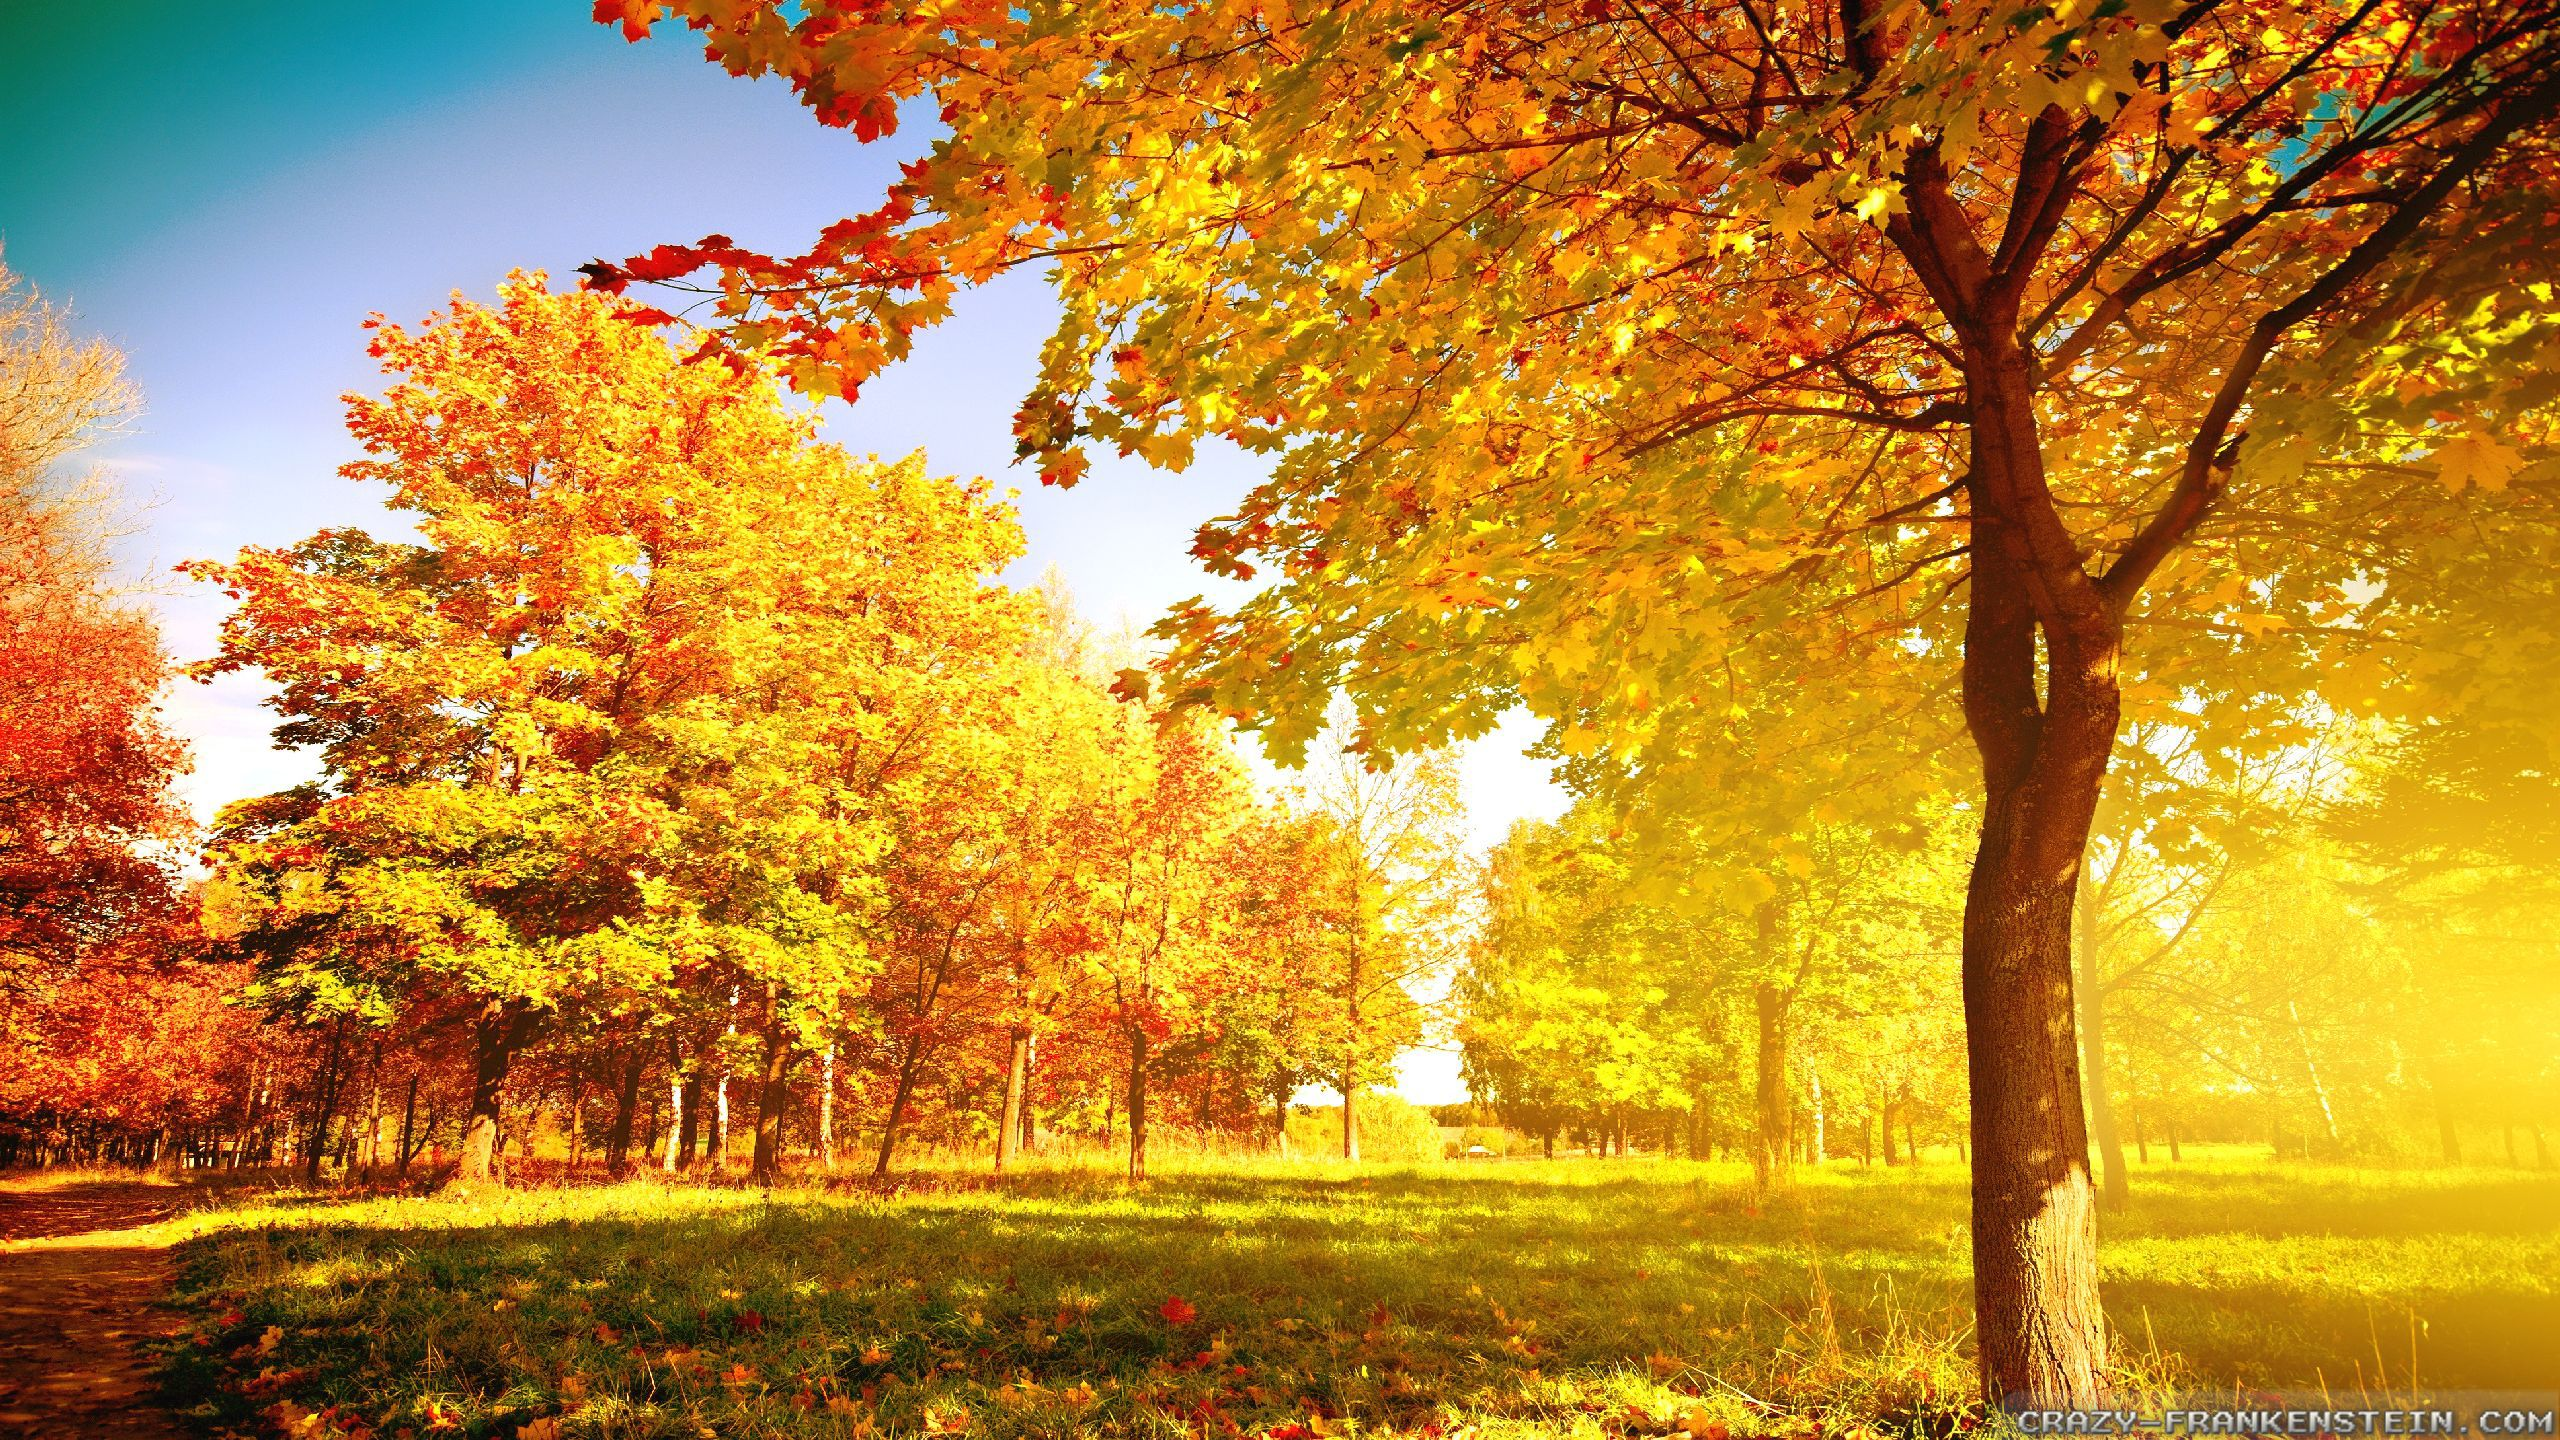 Fall Scenes For Computer Wallpaper Autumn Trees Wallpapers Seasonal Crazy Frankenstein